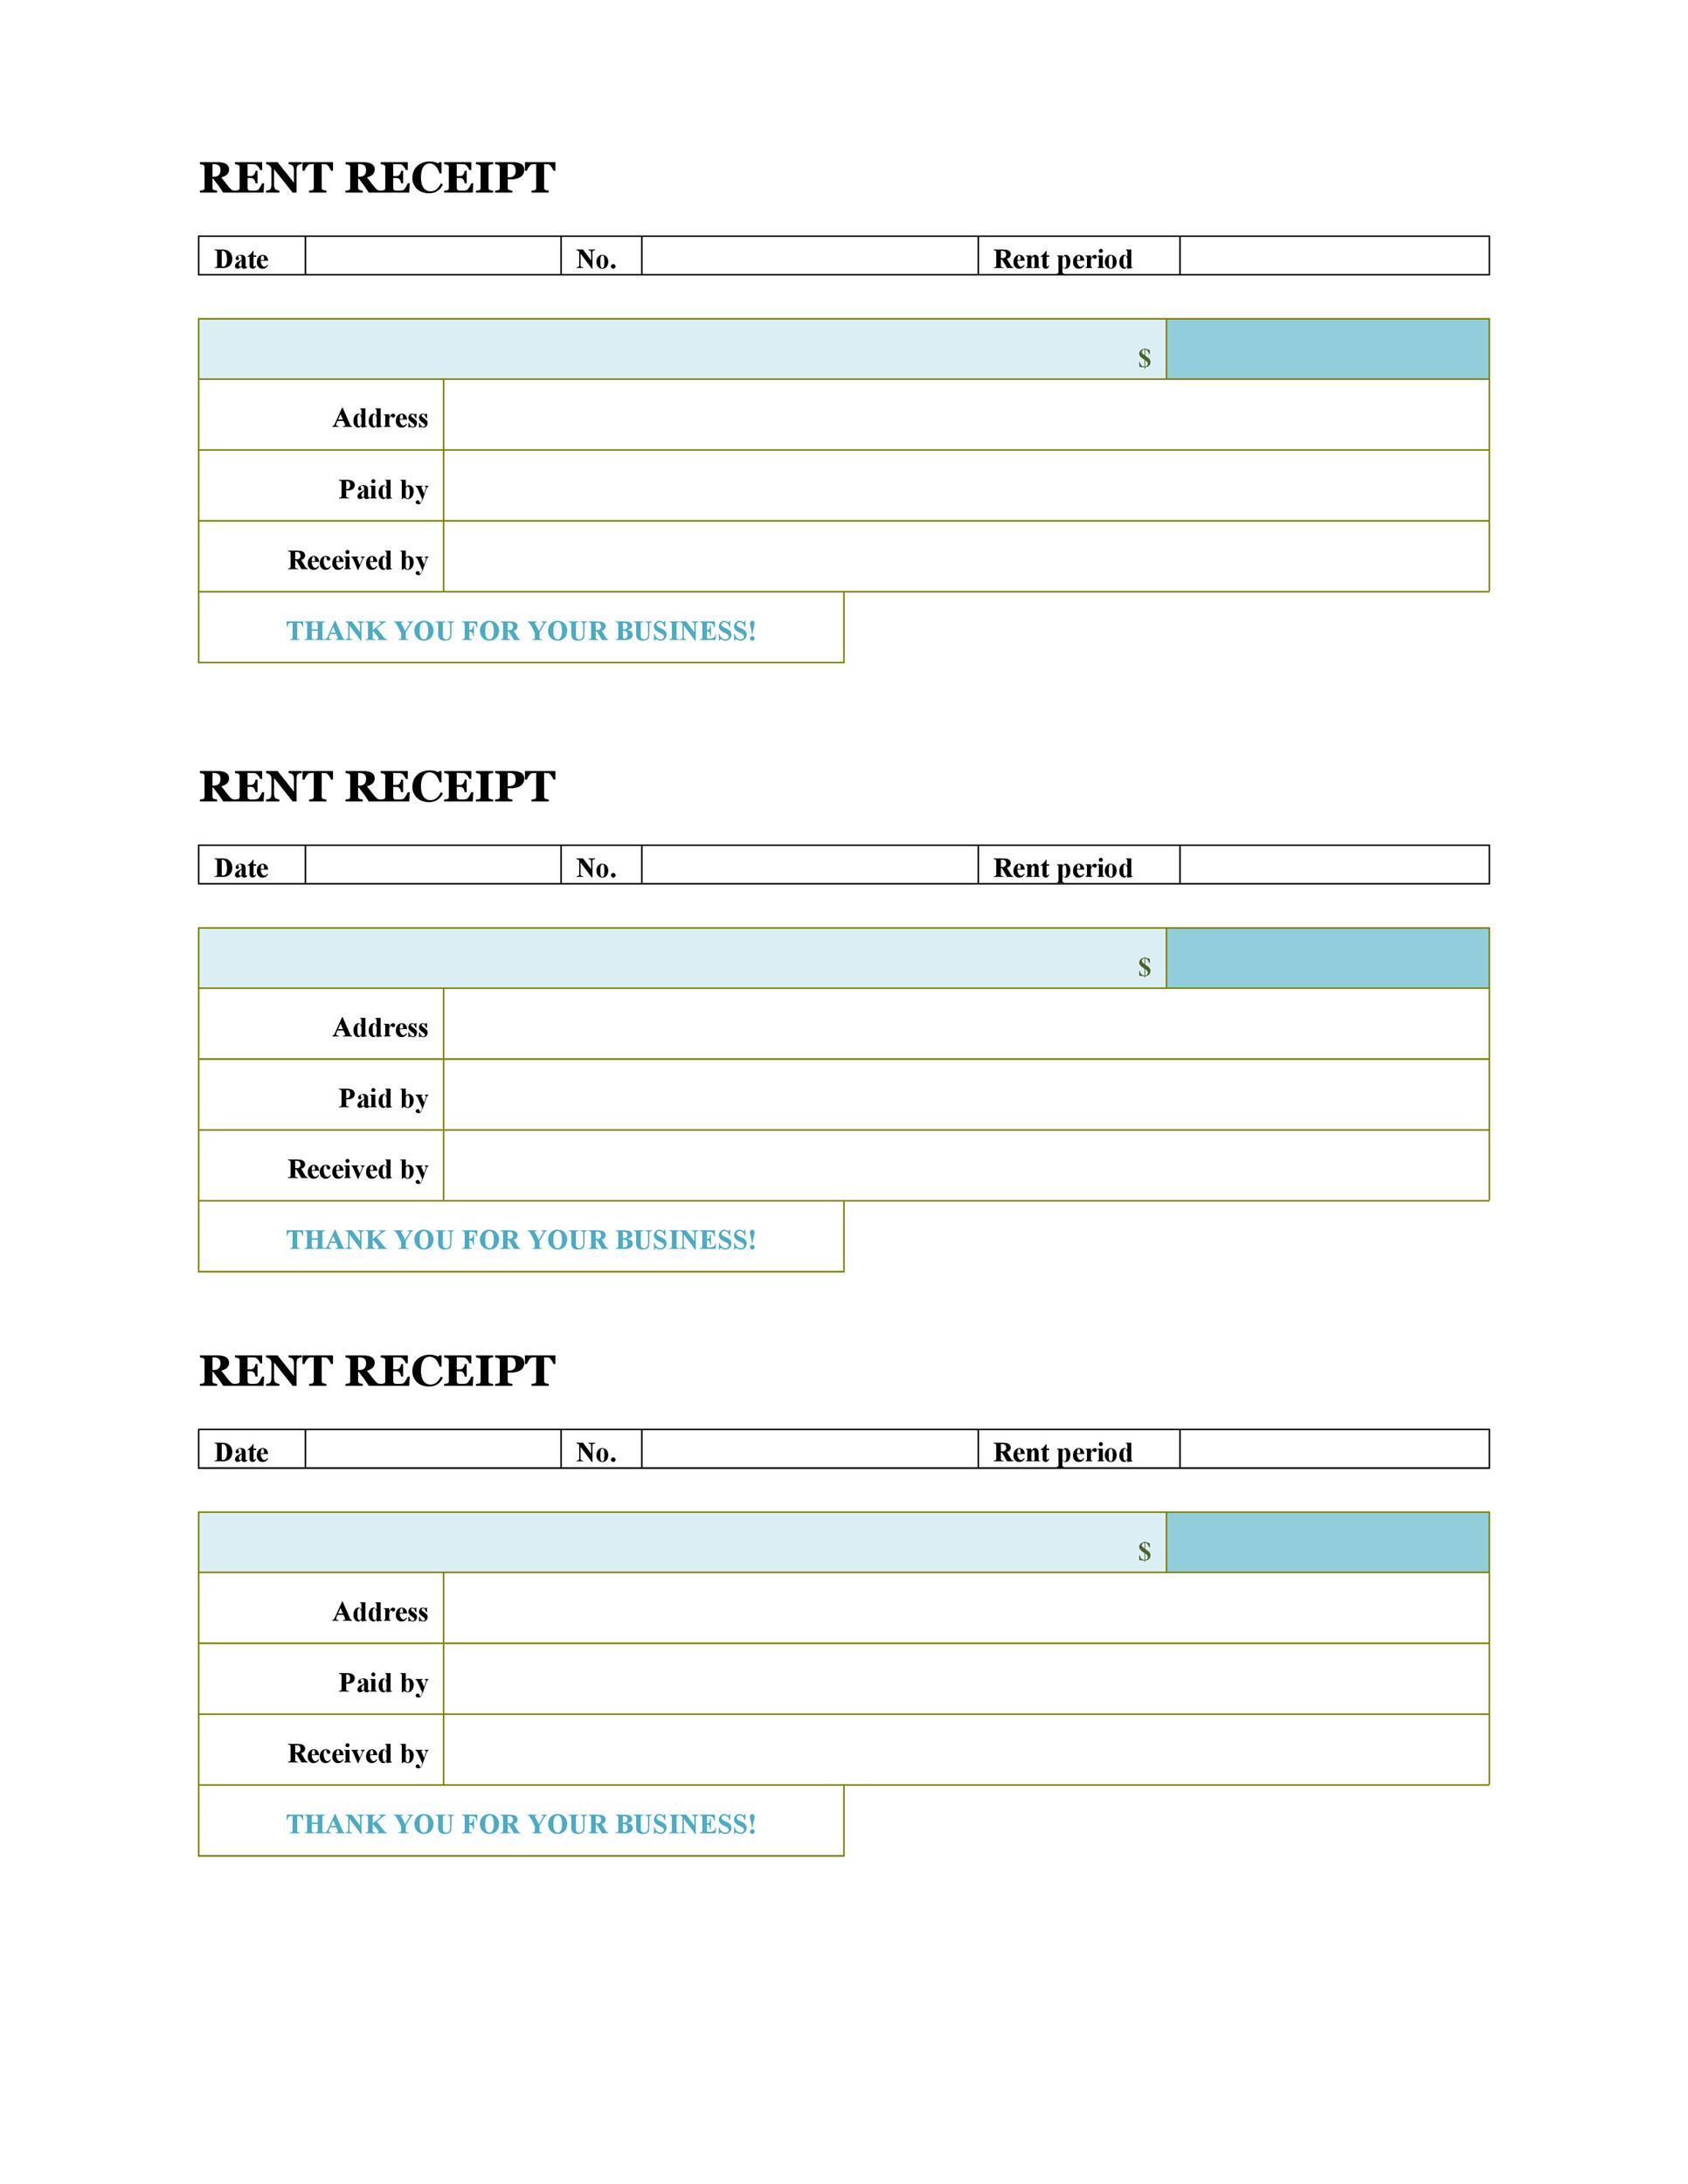 50 Free Receipt Templates Cash Sales Donation Taxi – Download Rent Receipt Format